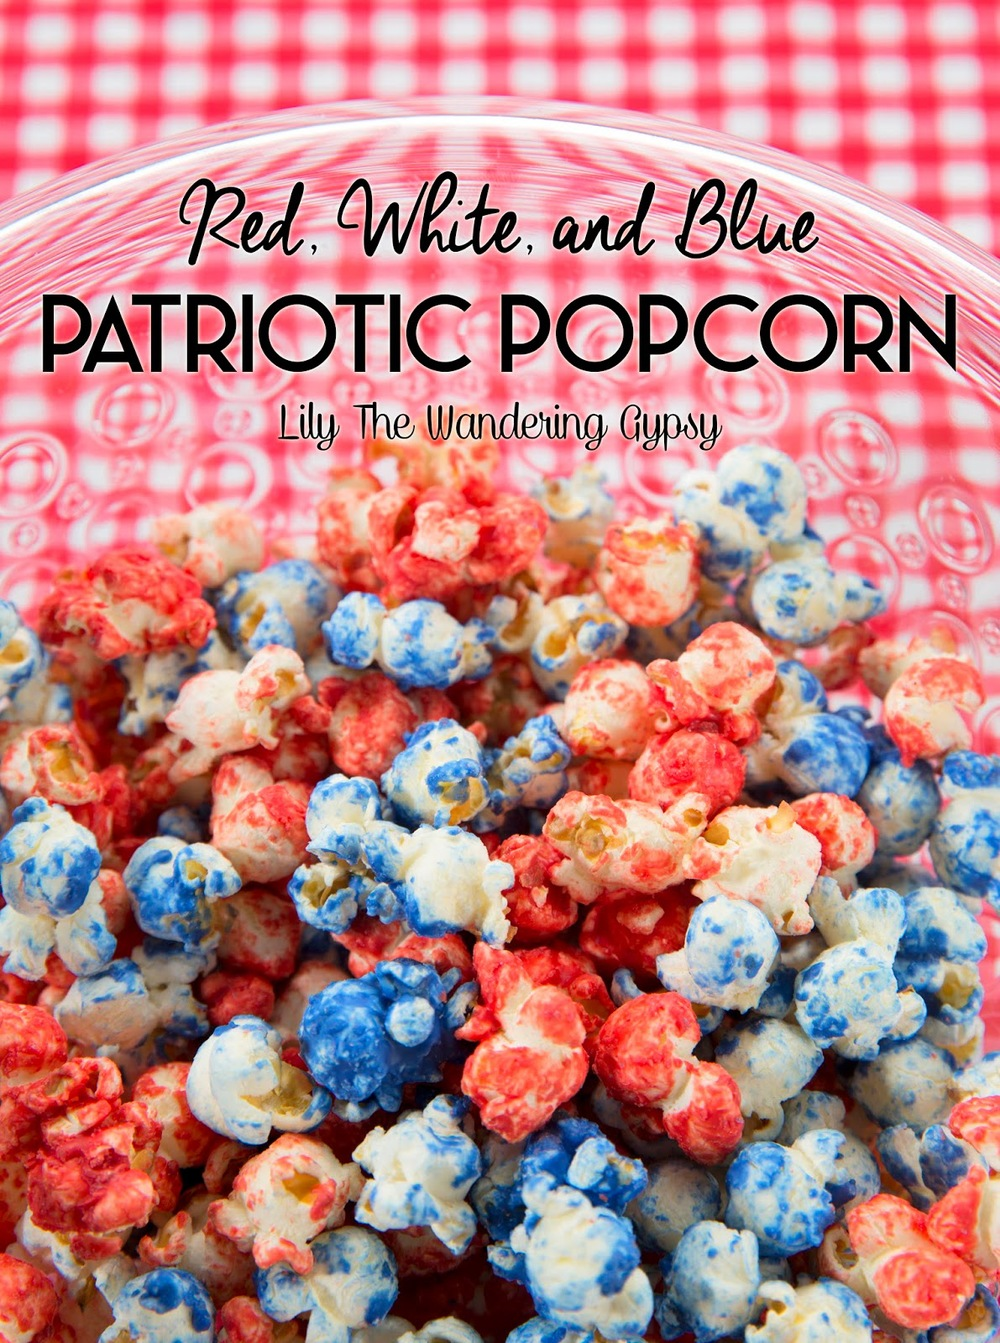 Check out this super-tasty, super-easy  Patriotic Popcorn Recipe Here .